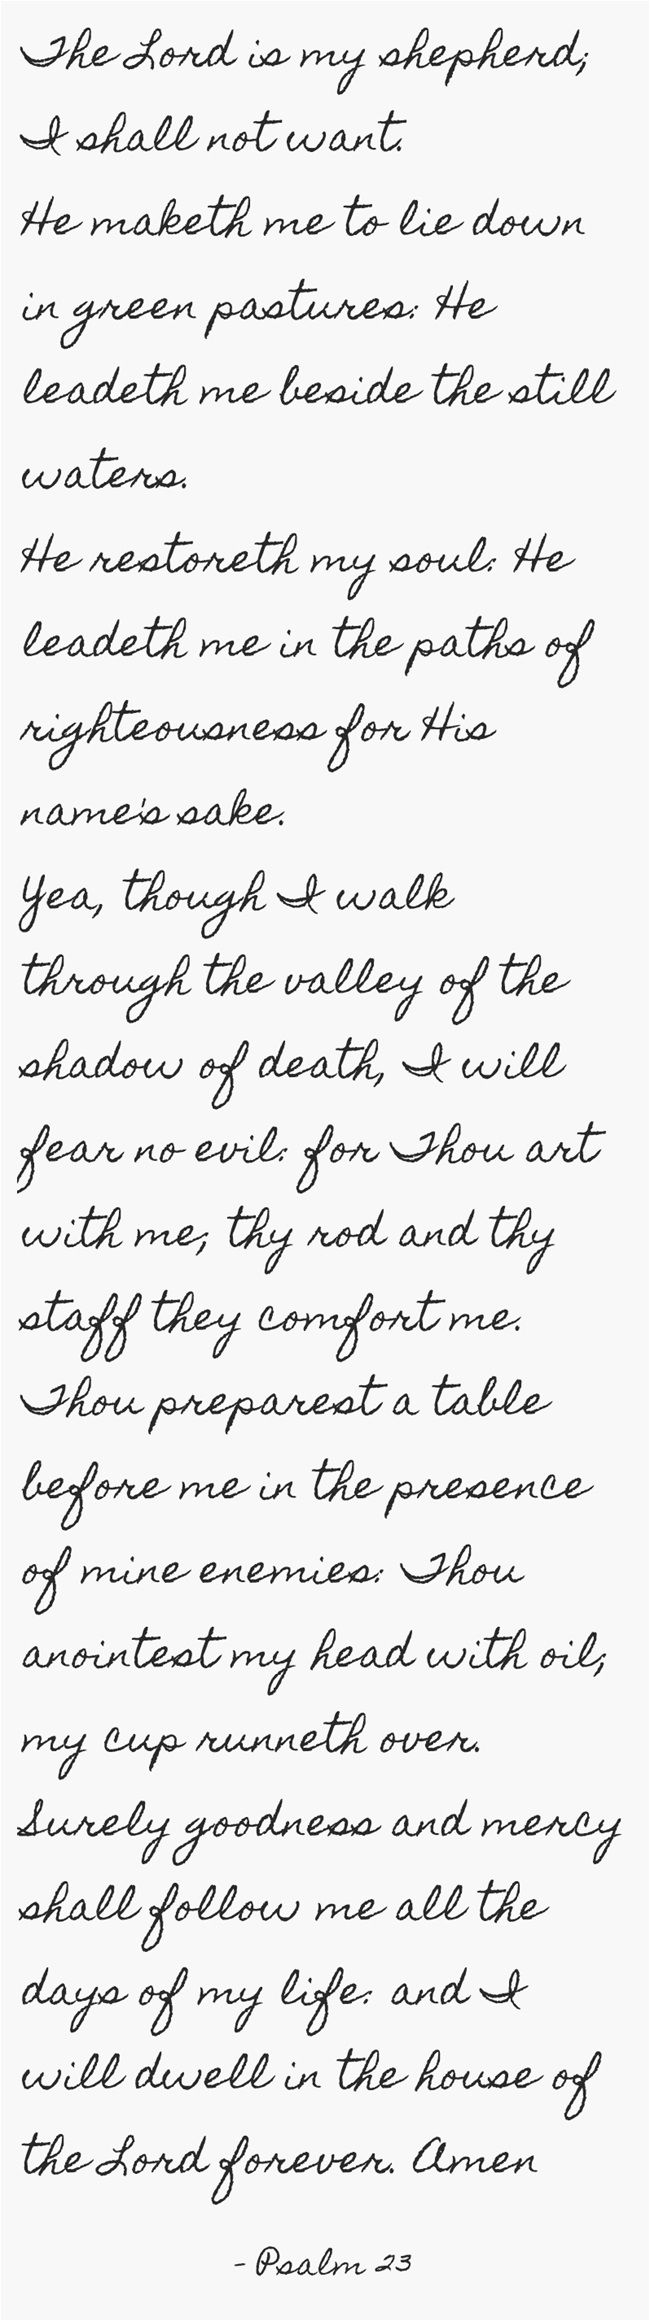 The Lord is my shepherd; I shall not want. He maketh me to lie down in green pastures: He leadeth me beside the still waters. He restoreth my soul: He leadeth me in the paths of righteousness for His name's sake. Yea, though I walk through the valley of the shadow of death, I will fear no evil: for Thou art with me; thy rod and thy staff they comfort me. Thou preparest a table before me in the presence of mine enemies: Thou anointest my head with oil; my cup runneth...